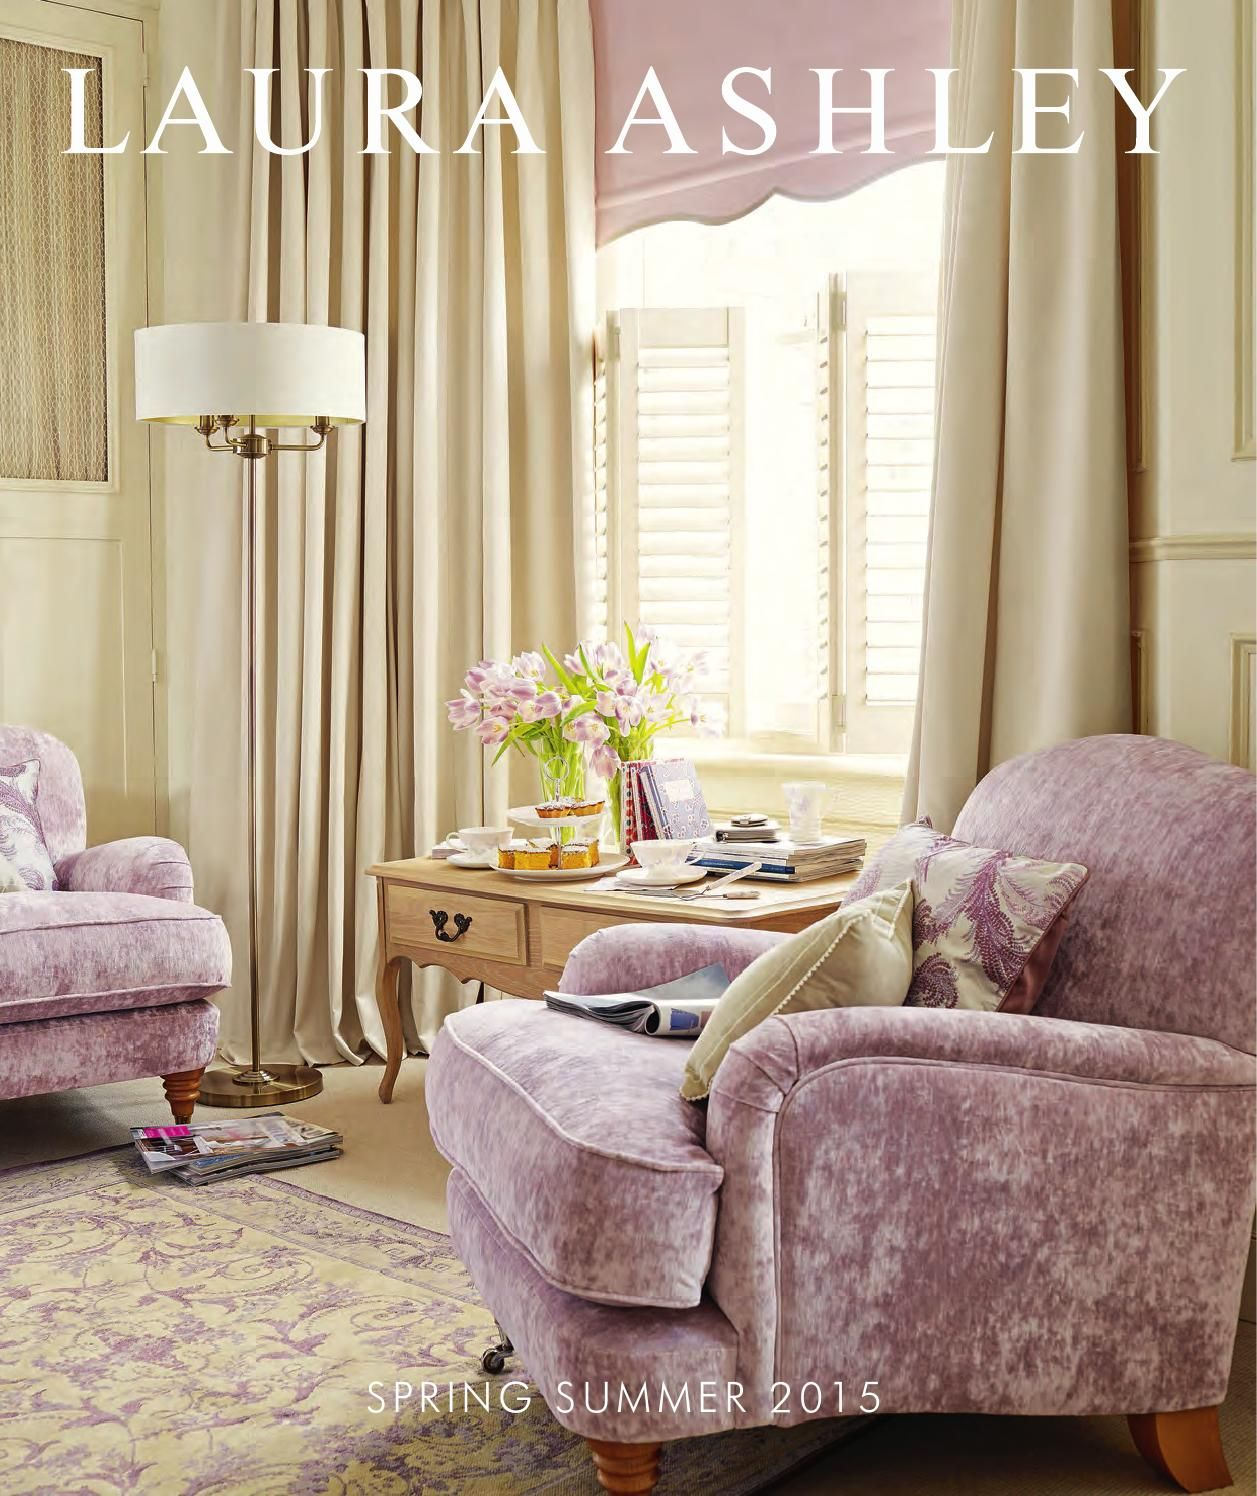 Laura Ashley Spring Summer 2015 Catalogue Laura Ashley